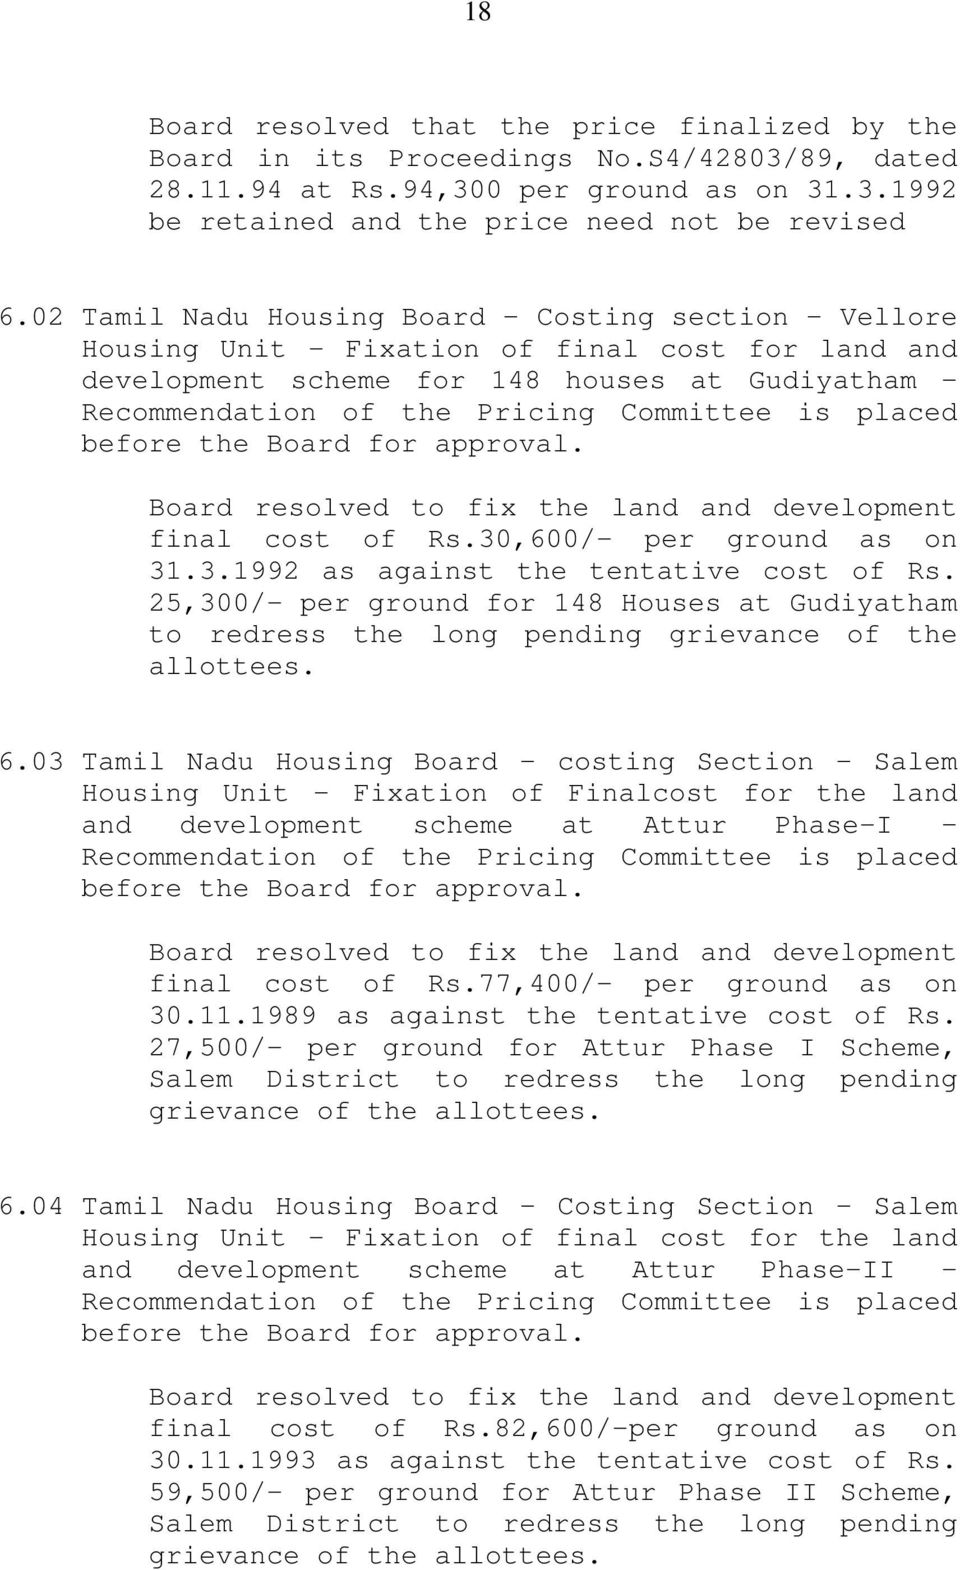 placed before the Board for approval. Board resolved to fix the land and development final cost of Rs.30,600/- per ground as on 31.3.1992 as against the tentative cost of Rs.